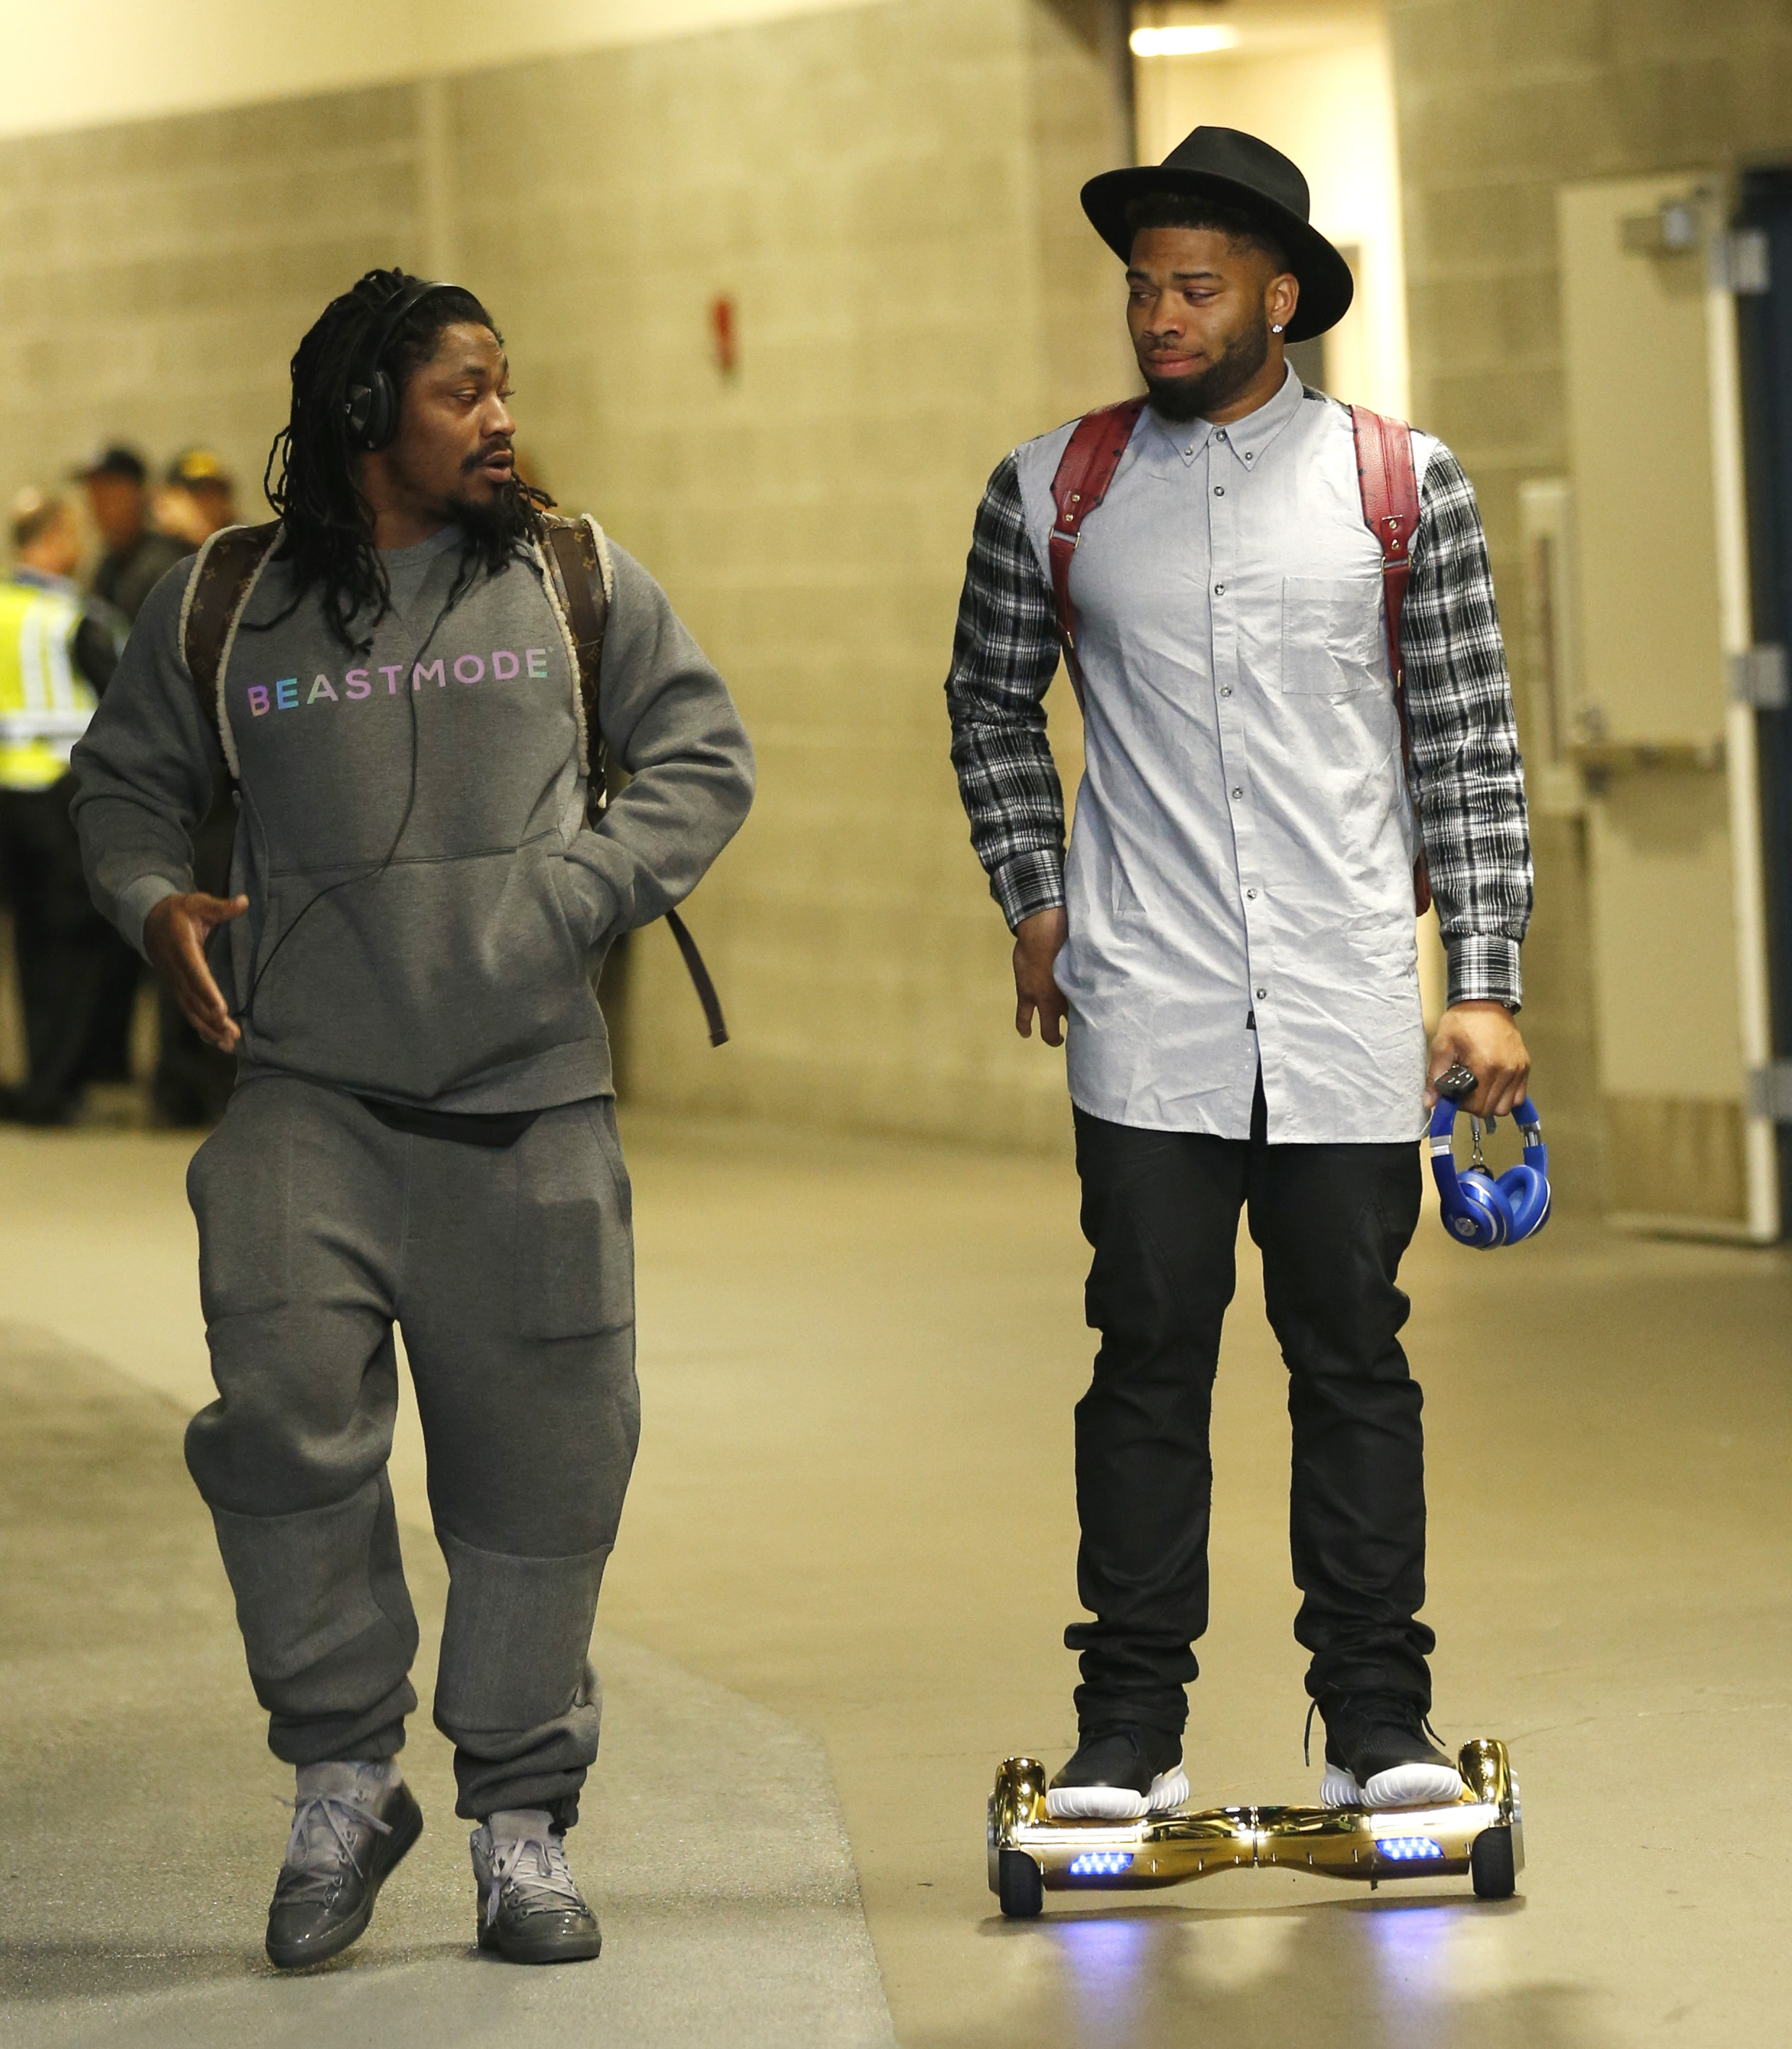 Seattle Seahawks running back Marshawn Lynch, left, and wide receiver B.J. Daniels, right, arrive for an NFL football game against the Carolina Panthers, Sunday, Oct. 18, 2015, in Seattle. (AP Photo/Stephen Brashear)